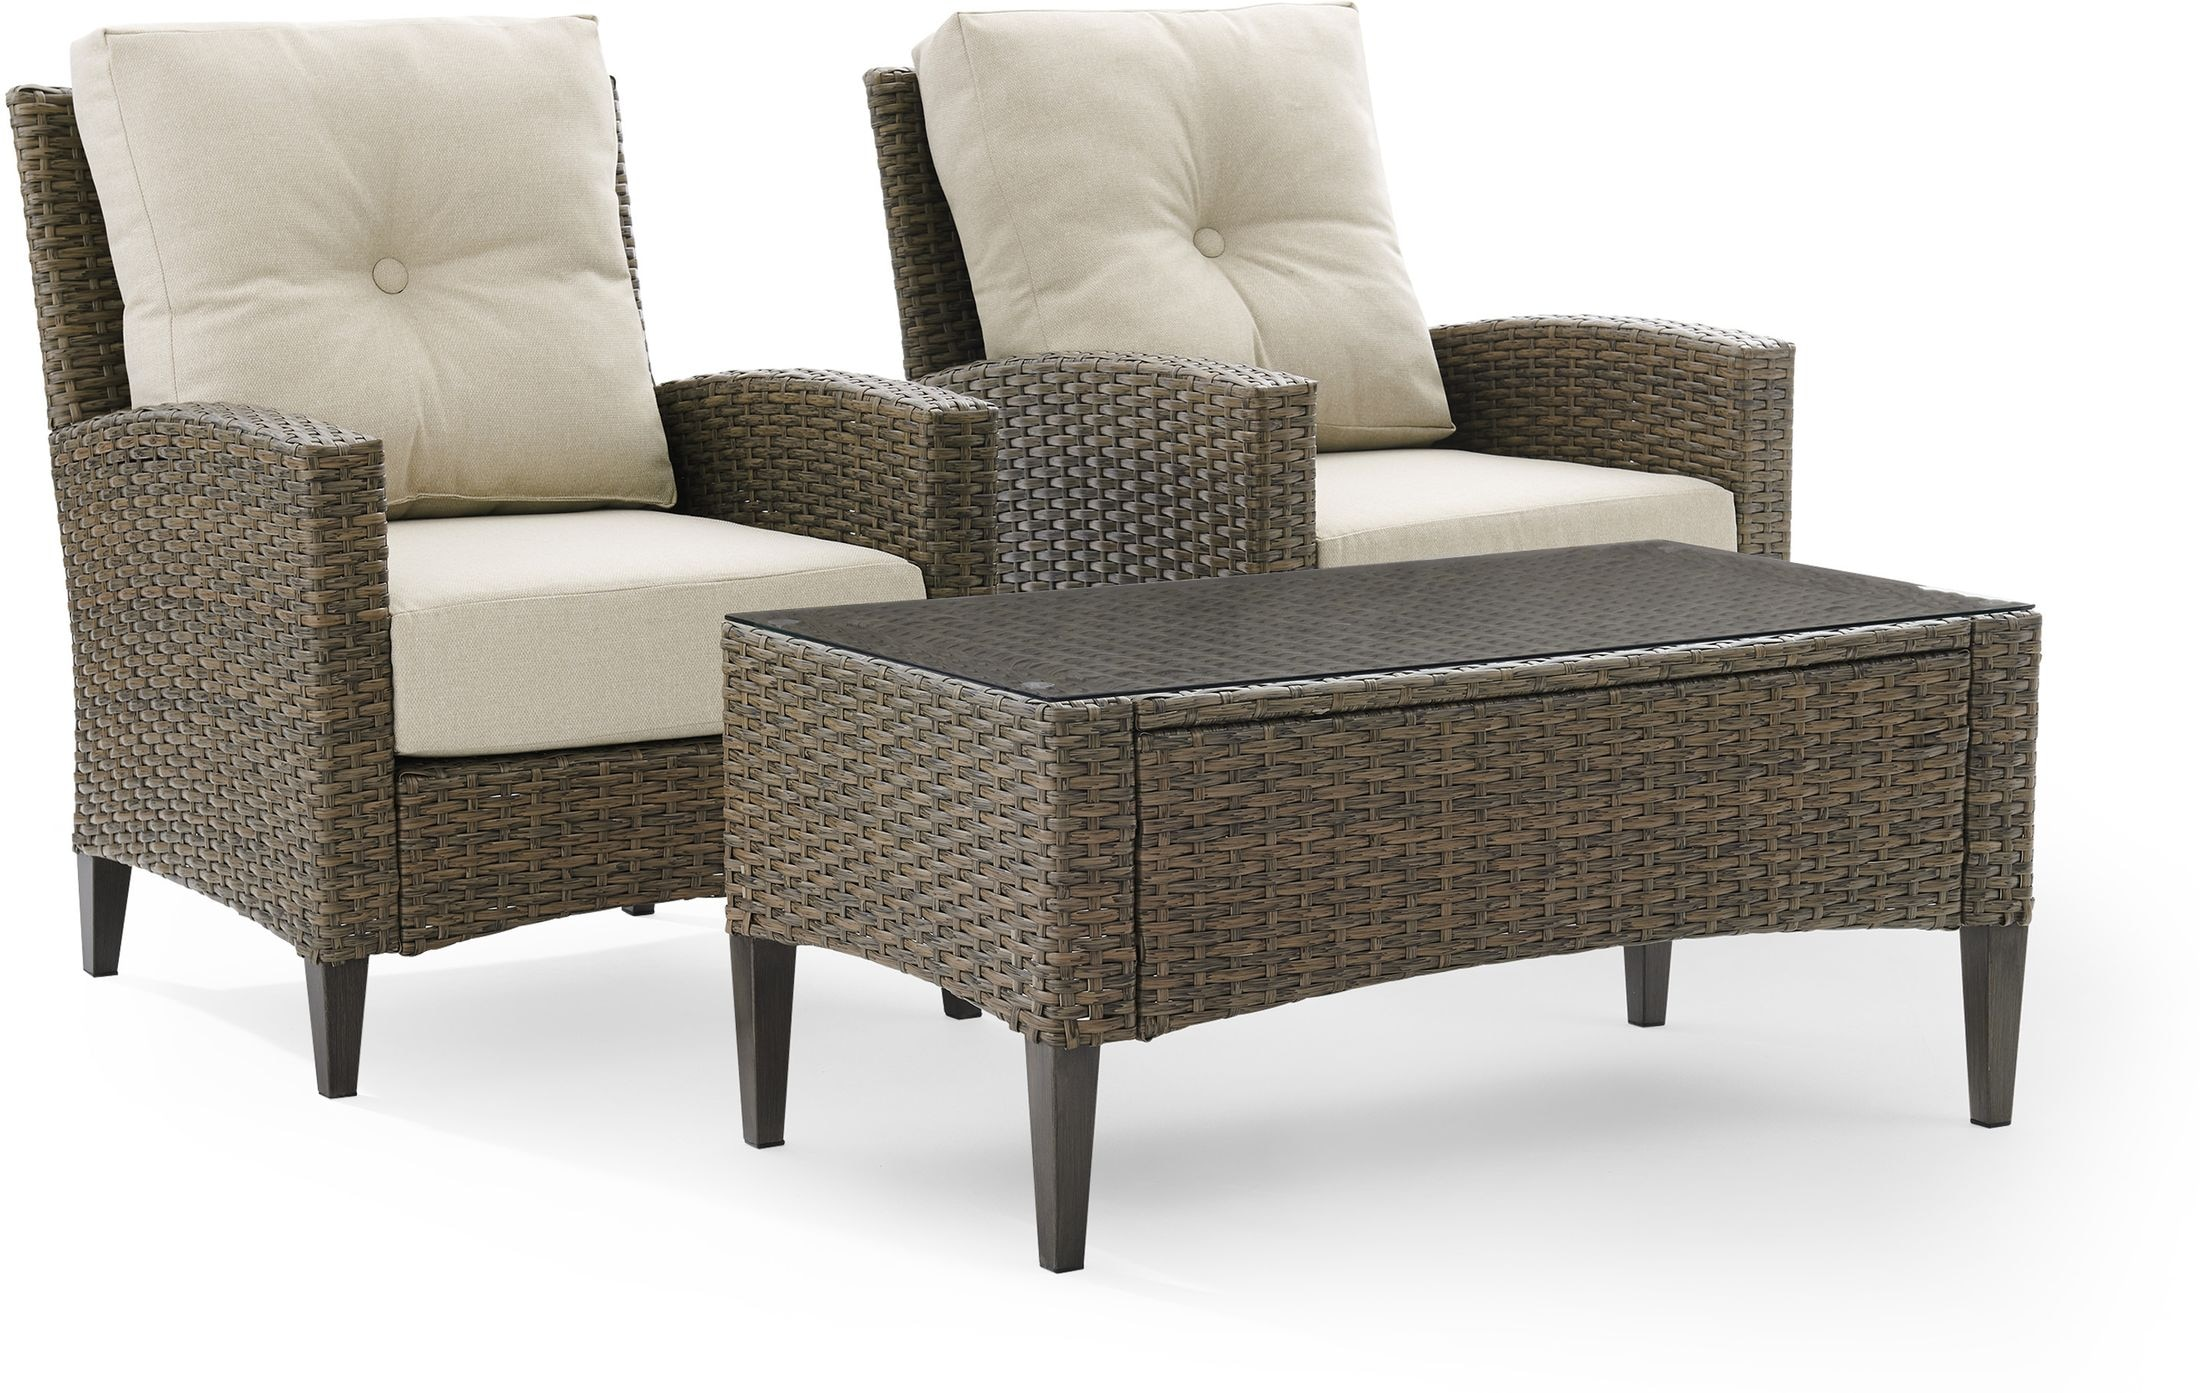 Outdoor Furniture - Huron Set of 2 Outdoor Chairs and Coffee Table